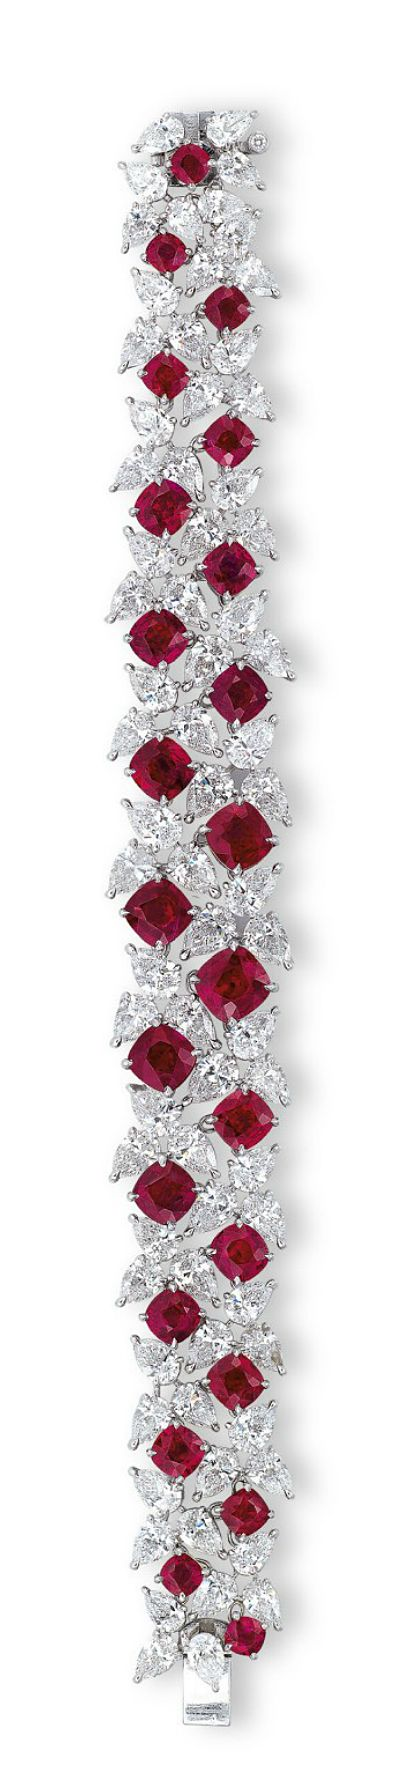 A RARE RUBY AND DIAMOND BRACELET, BY FAIDEE The highly articulated pear-shaped d...